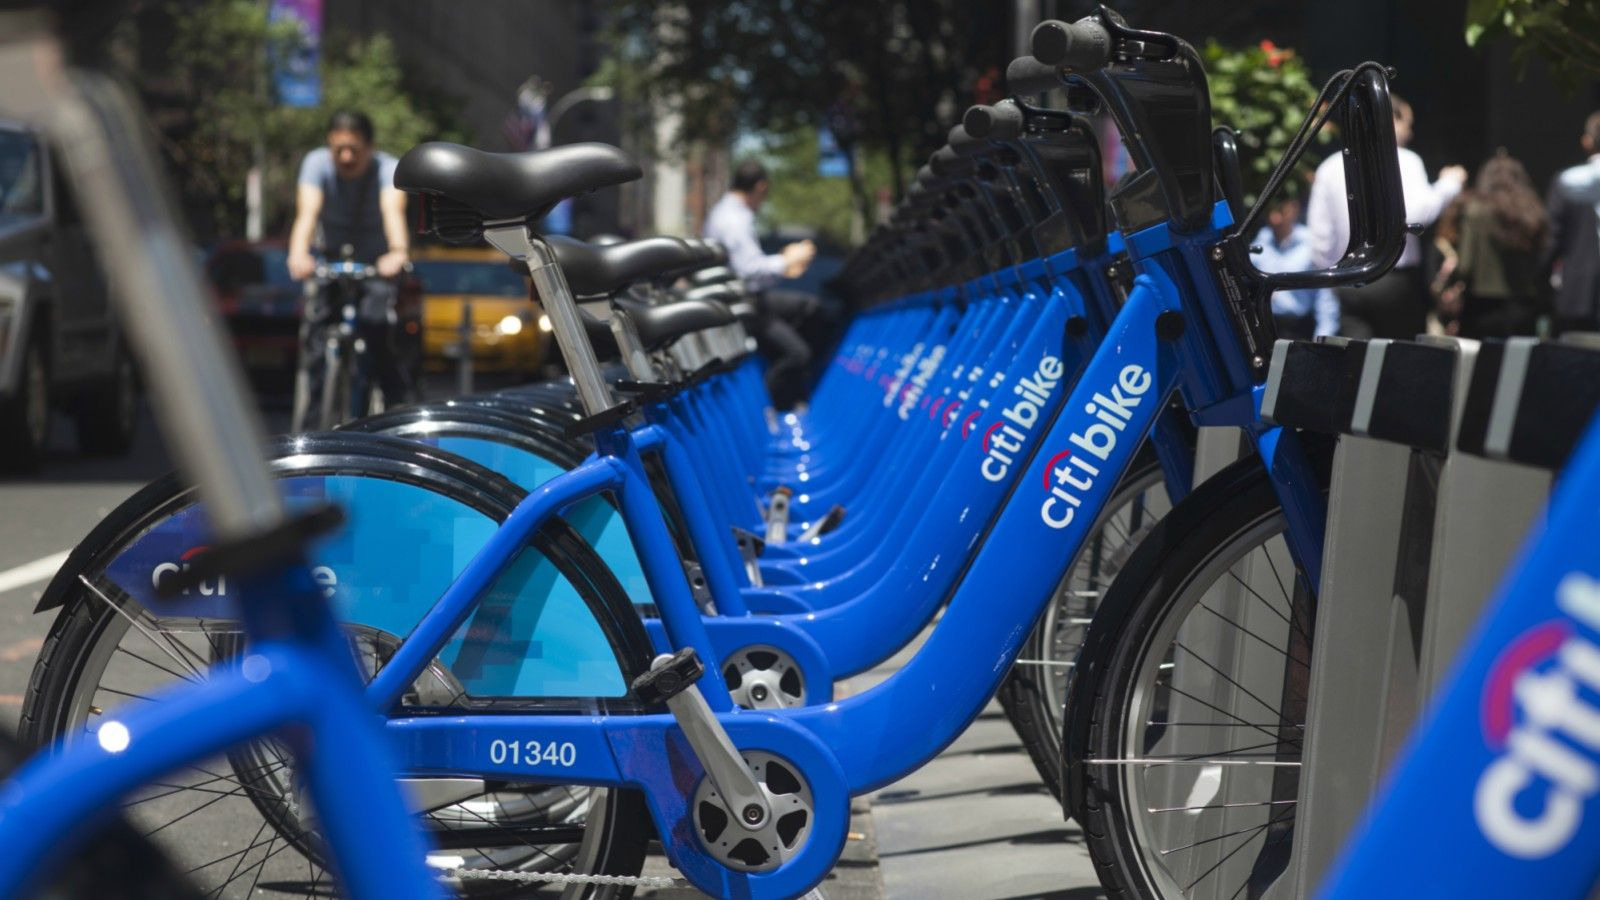 Things to do in Jersey City - Citi Bike